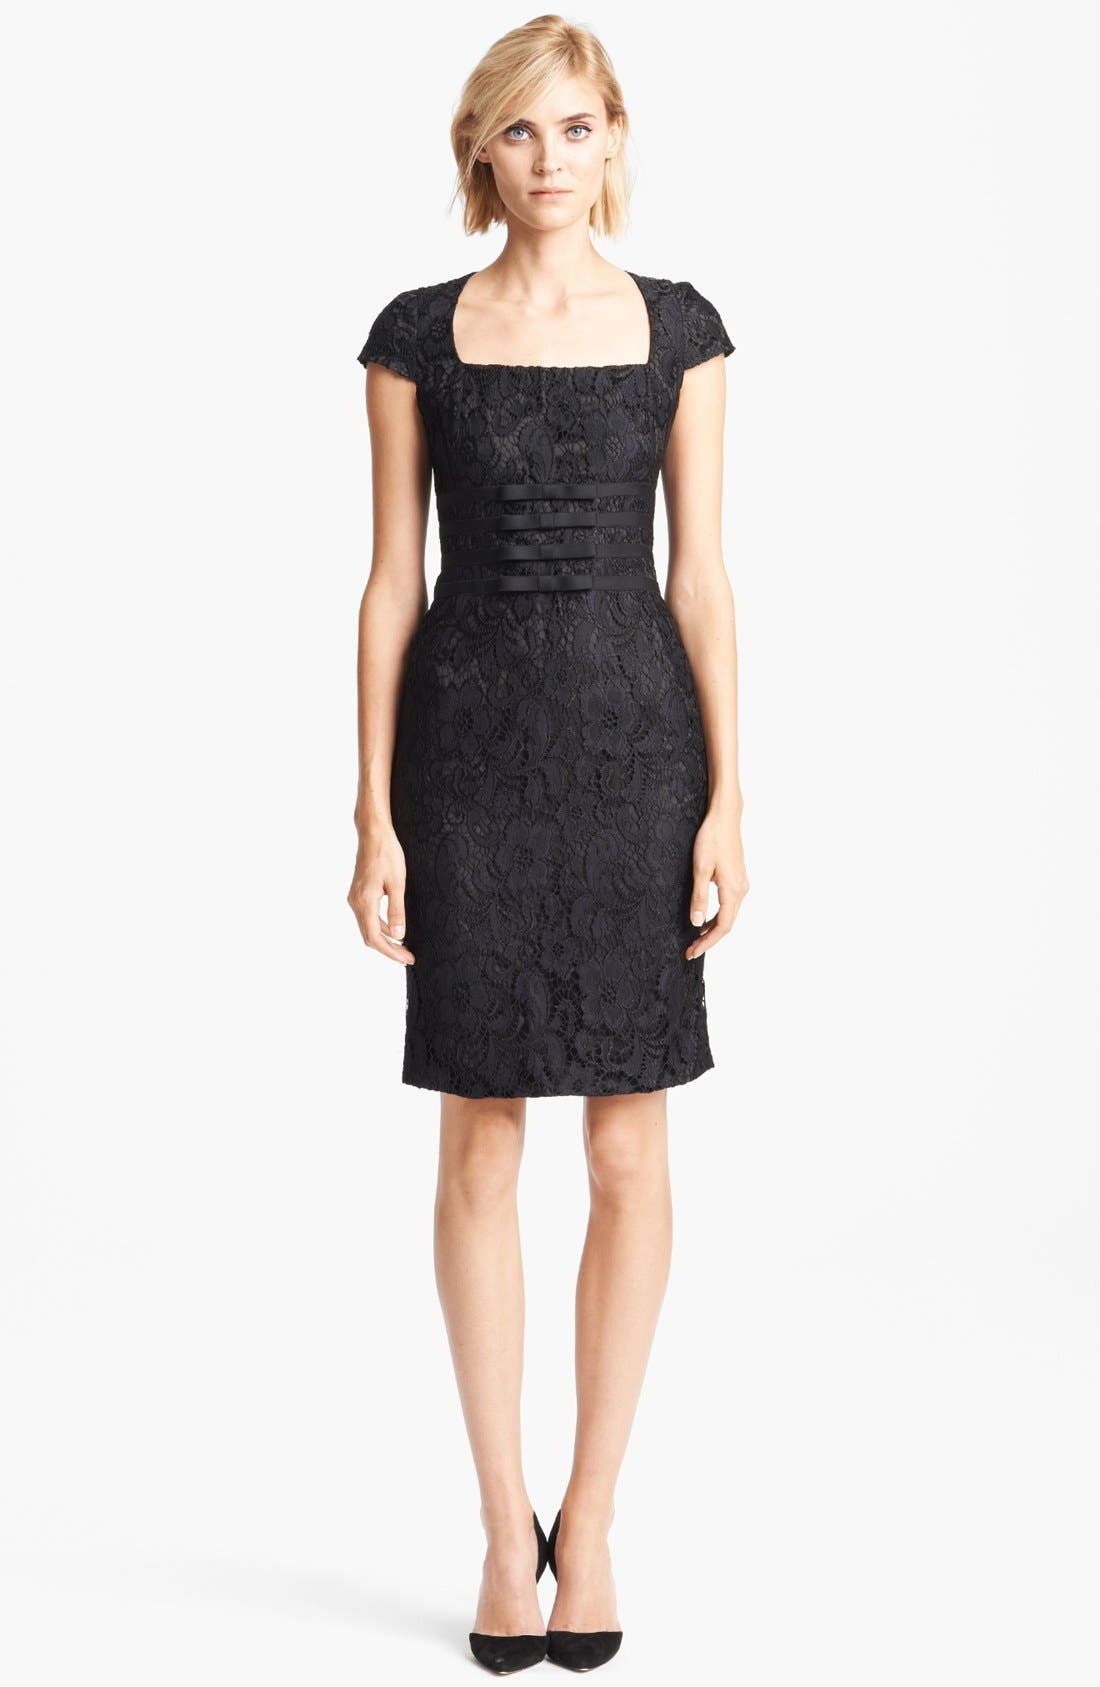 Main Image - Moschino Cheap & Chic Bow Detail Lace Dress